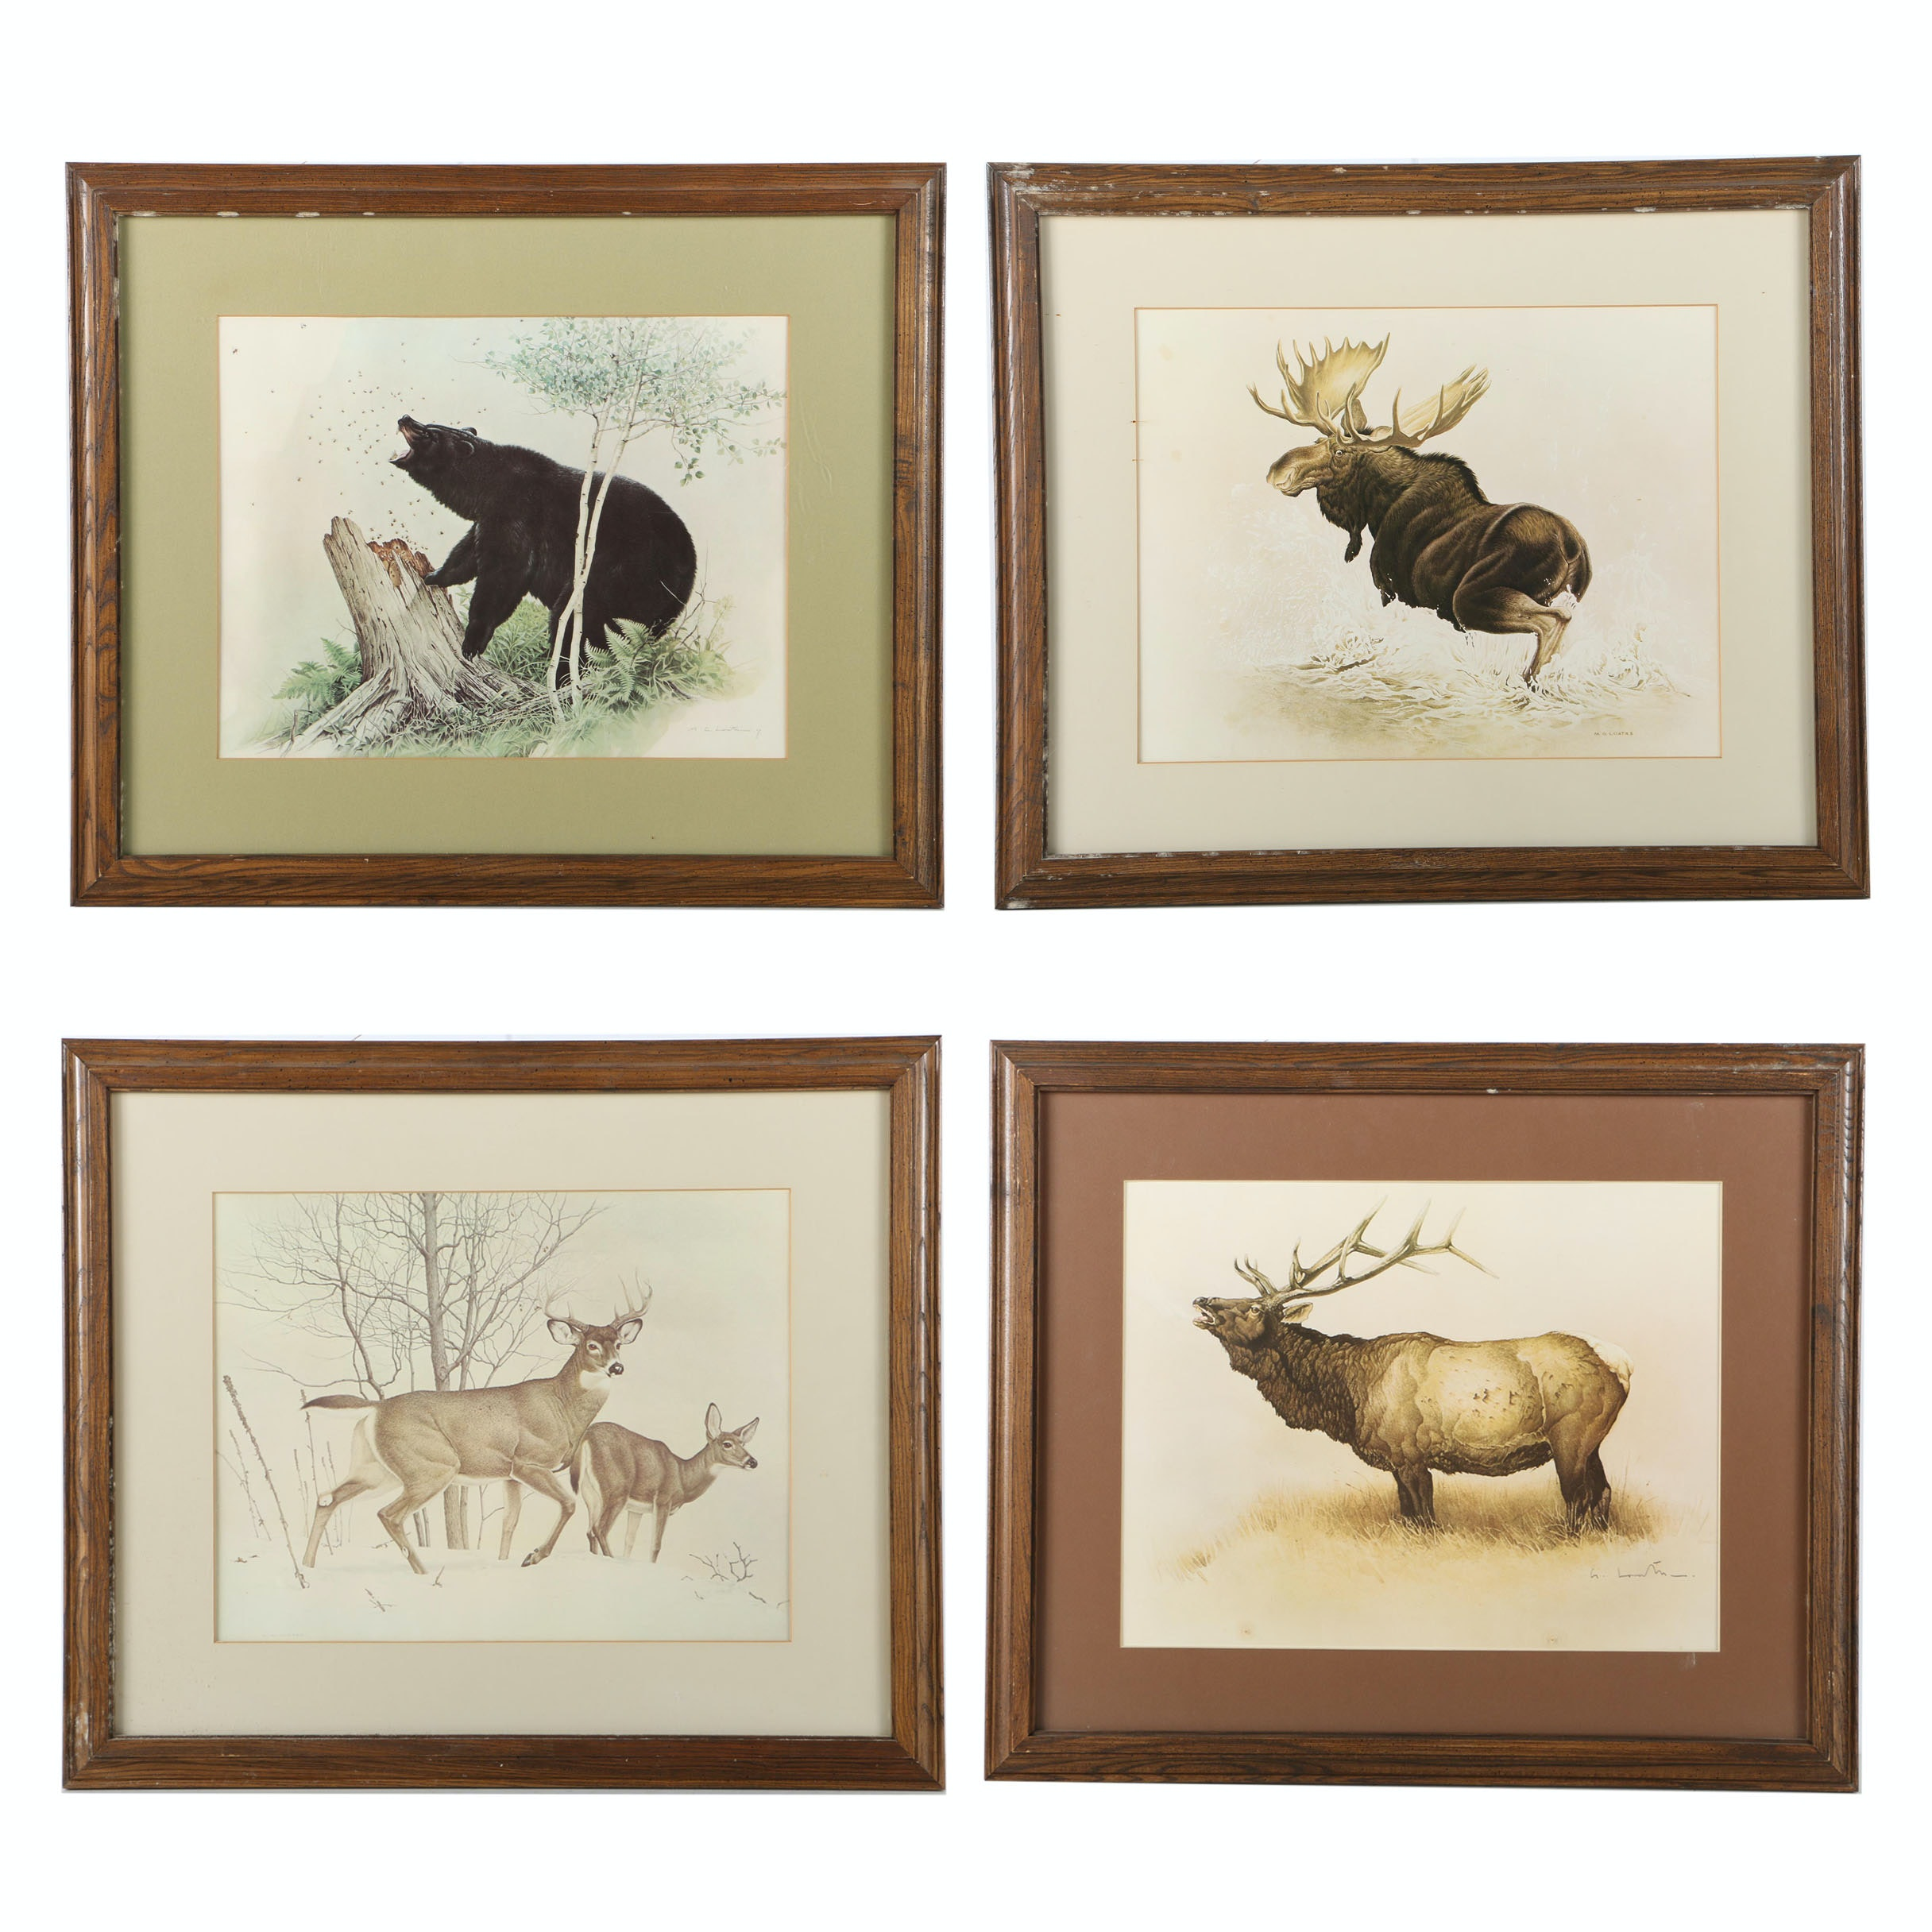 Wildlife Reproduction Prints on Paper After Glen Loates